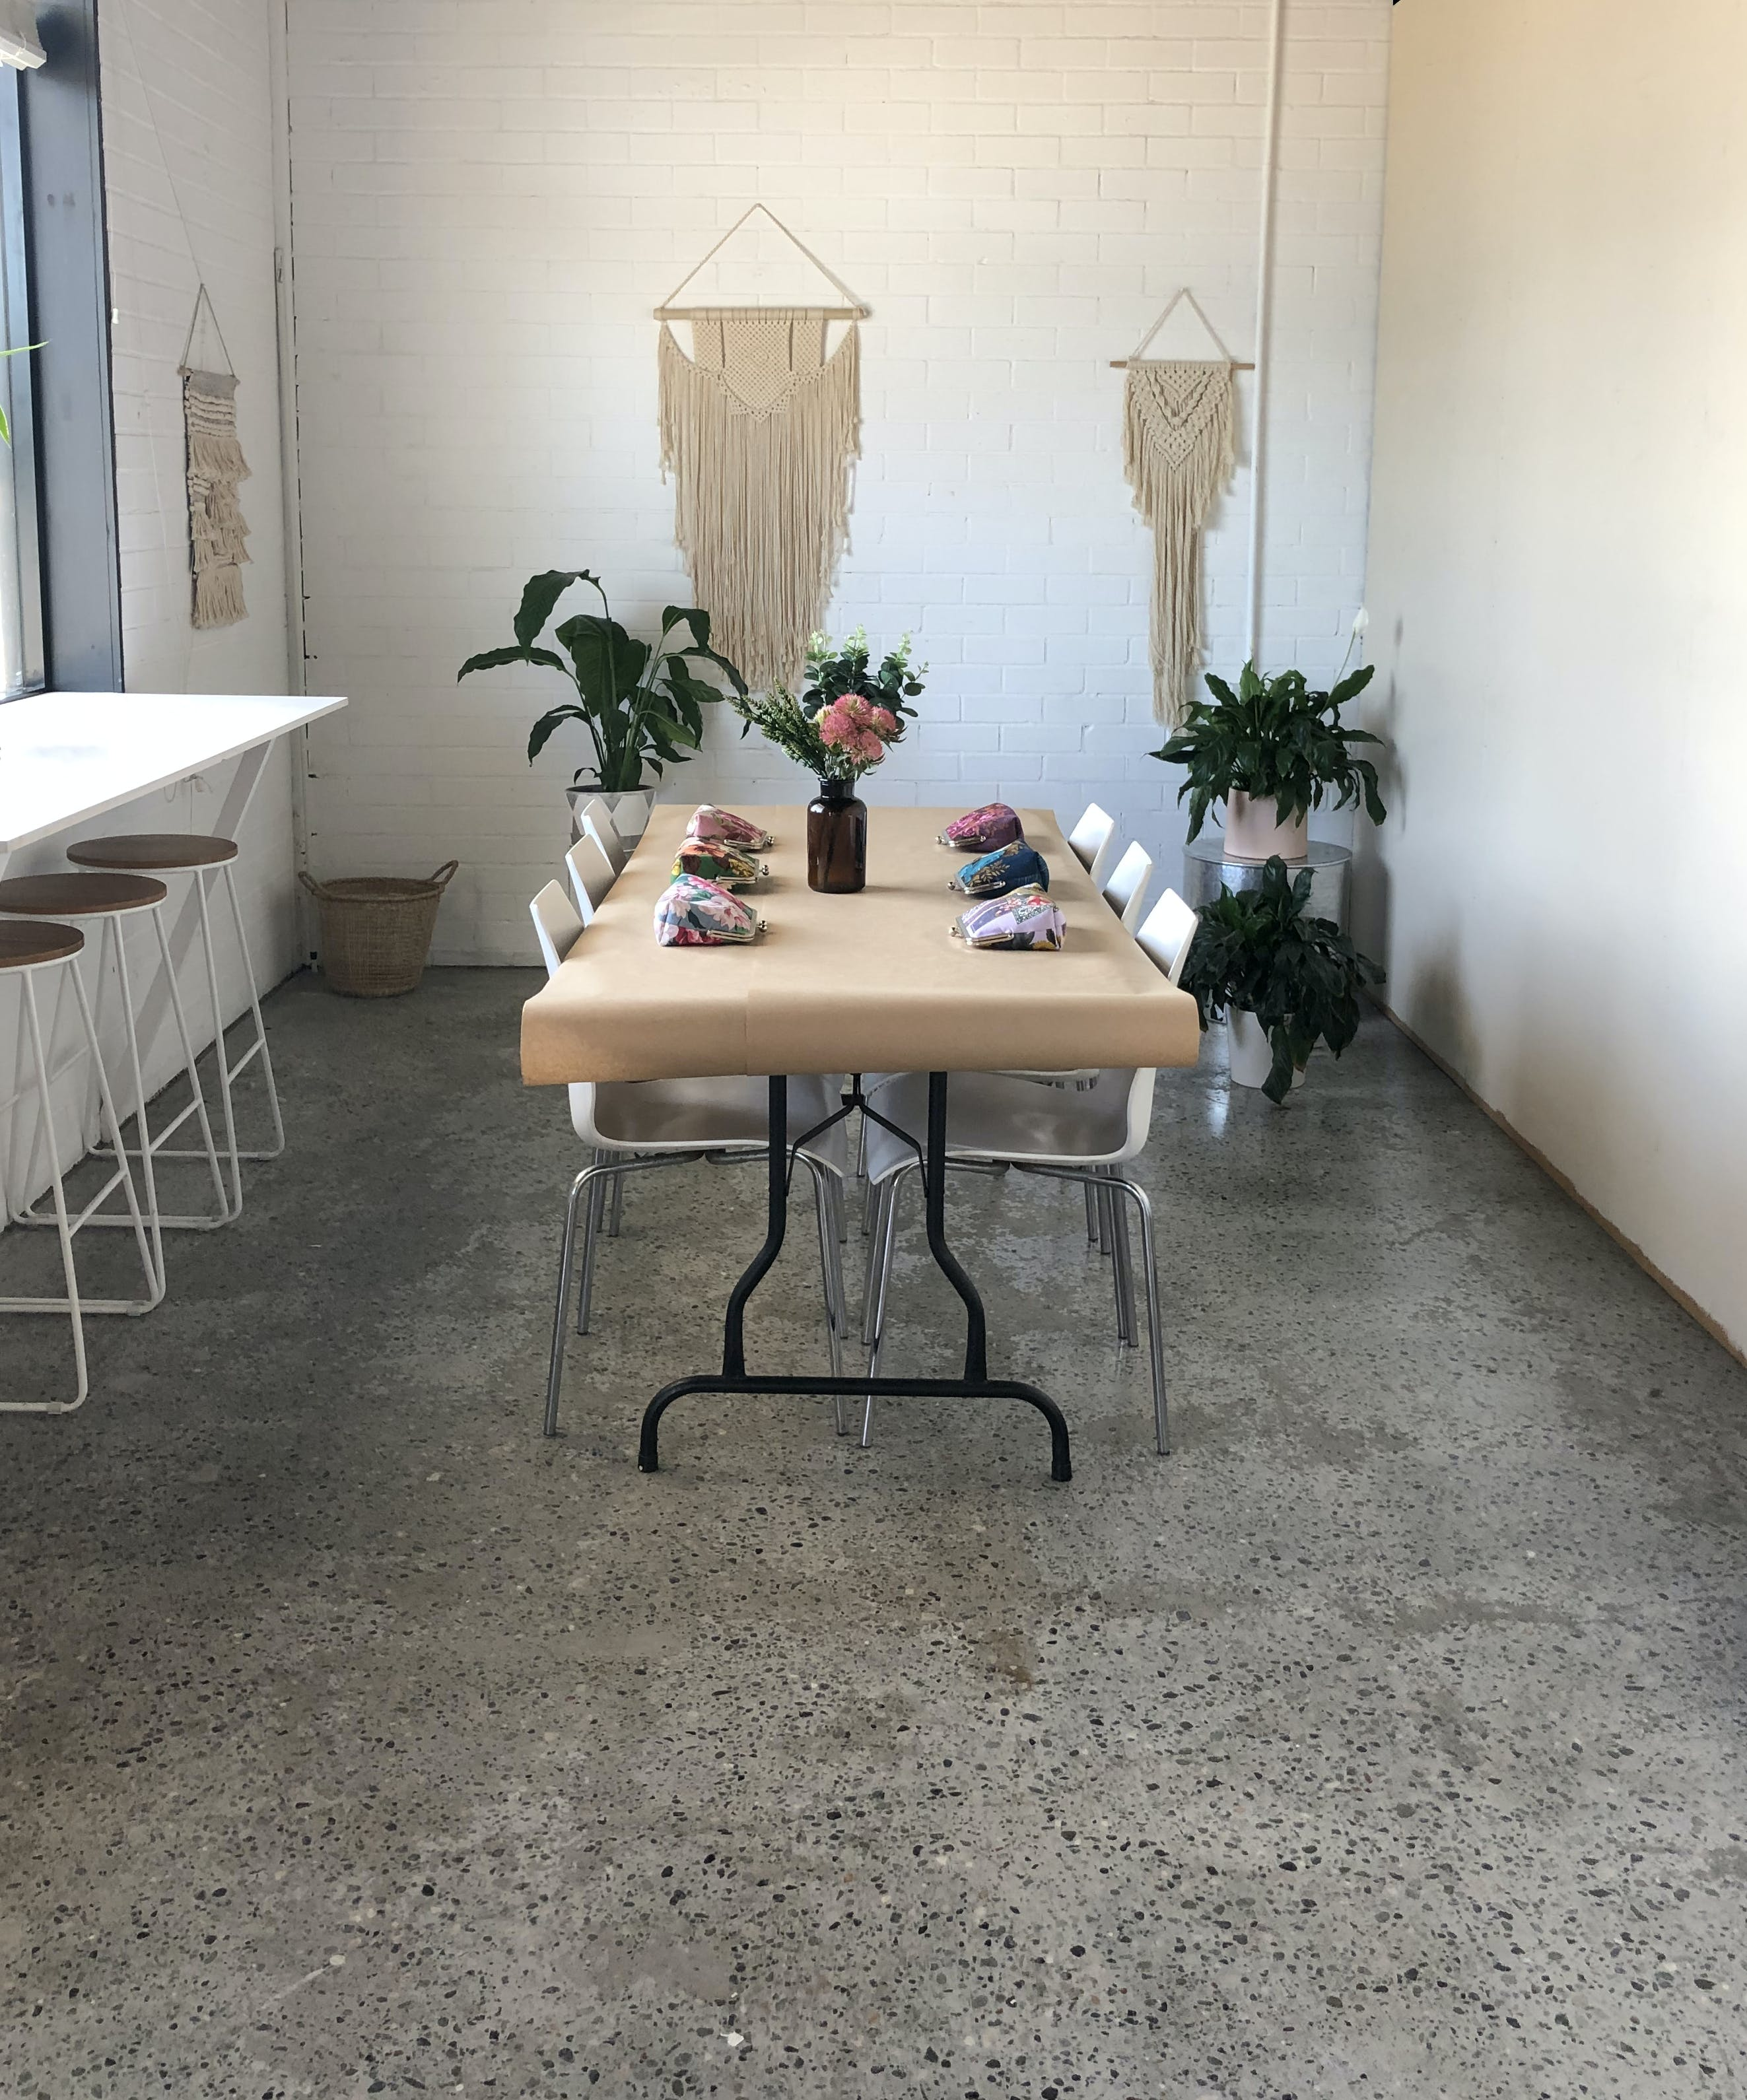 The Space, multi-use area at Birdy's Space, image 2